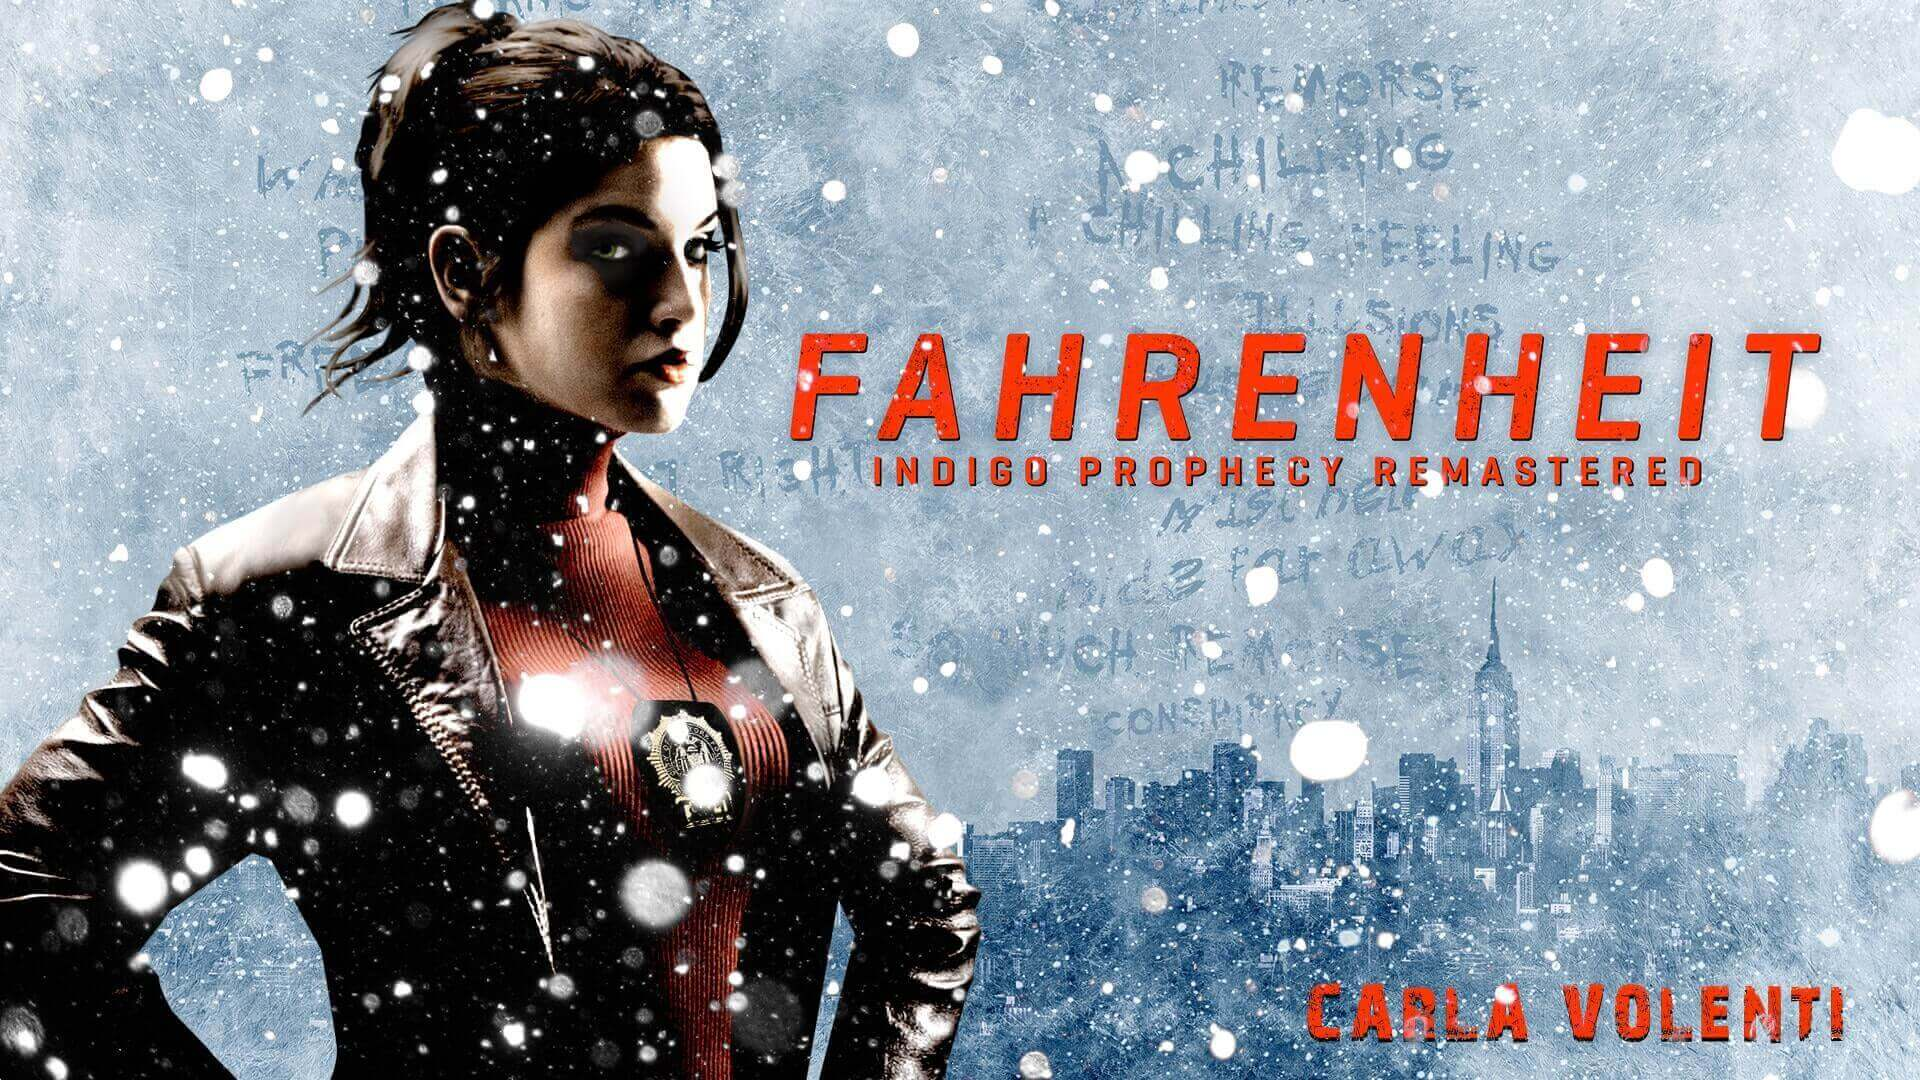 Fahrenheit Indigo Prophecy Remastered карточки steam - Fahrenheit Арт